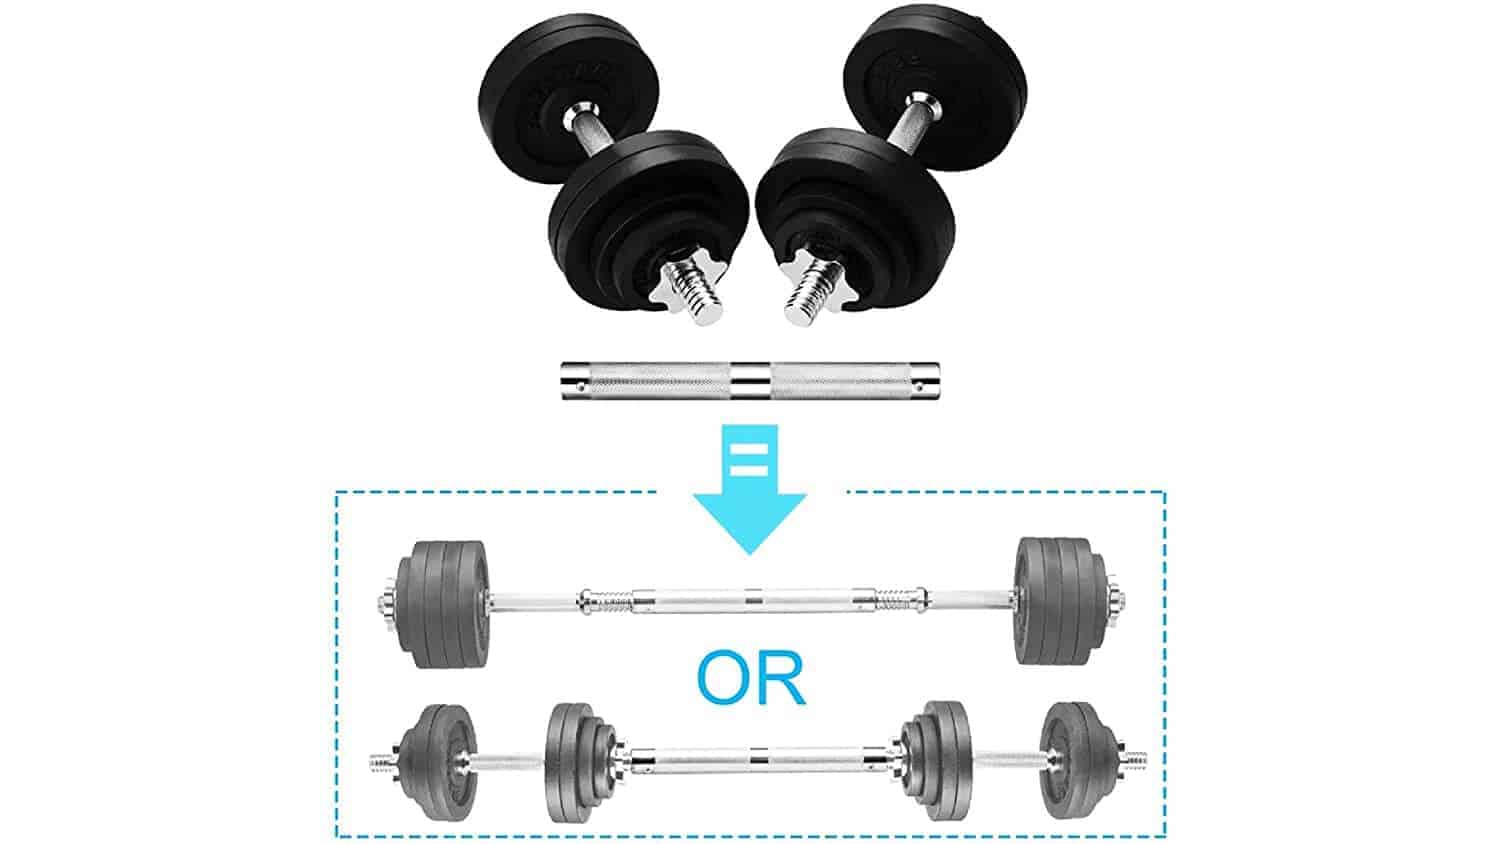 KAKSS-Exclusive-Adjustable-Dumbbells-with-2-in-1-Connector-20KG-to-50KG-Proudly-Made-in-India